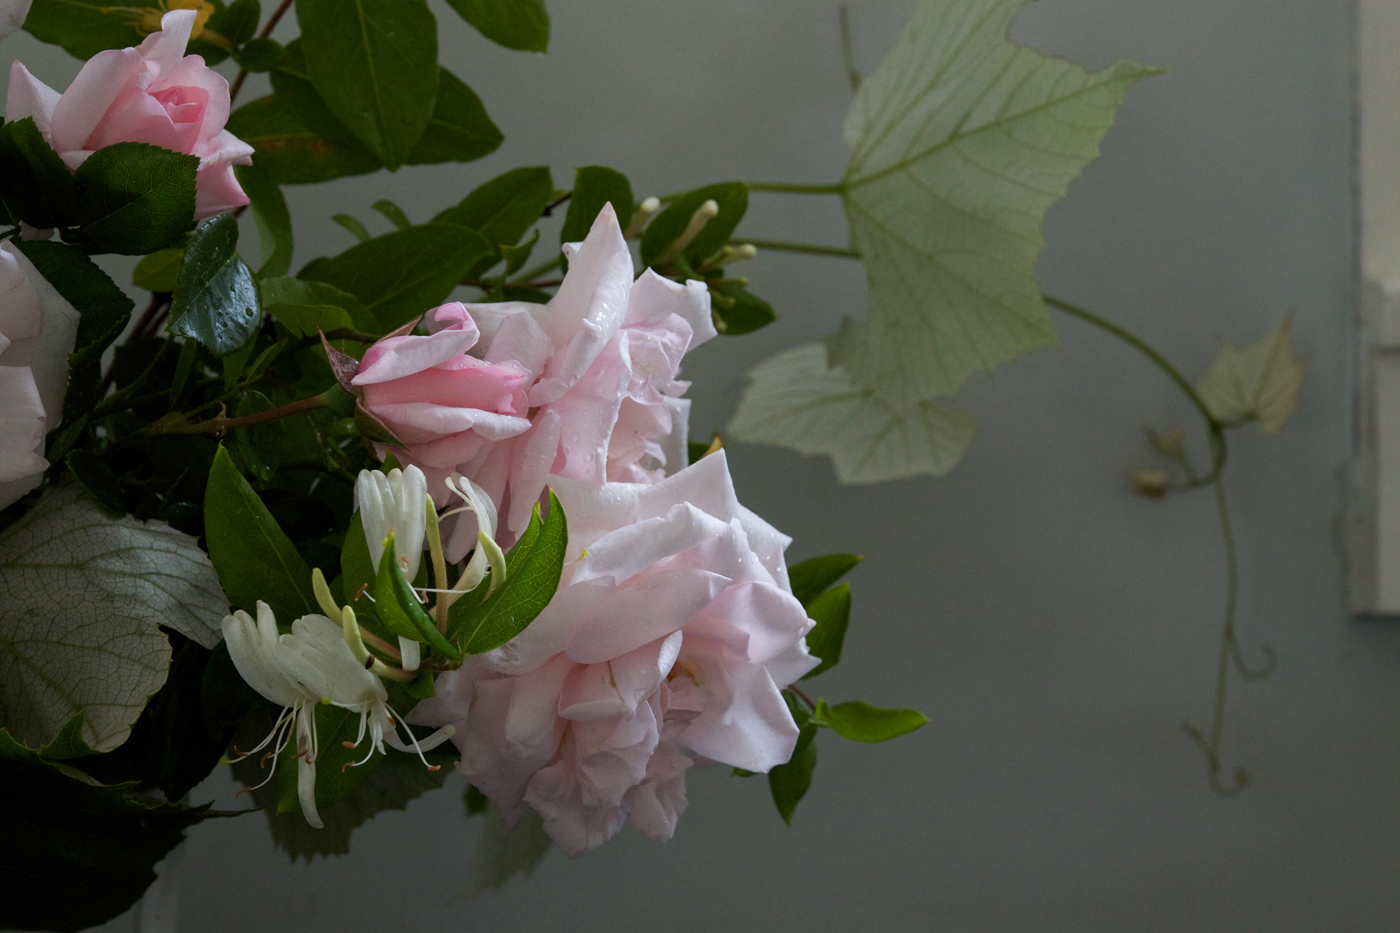 New Dawn Rose Bouquet, detail roses, by Justine Hand for Gardenista